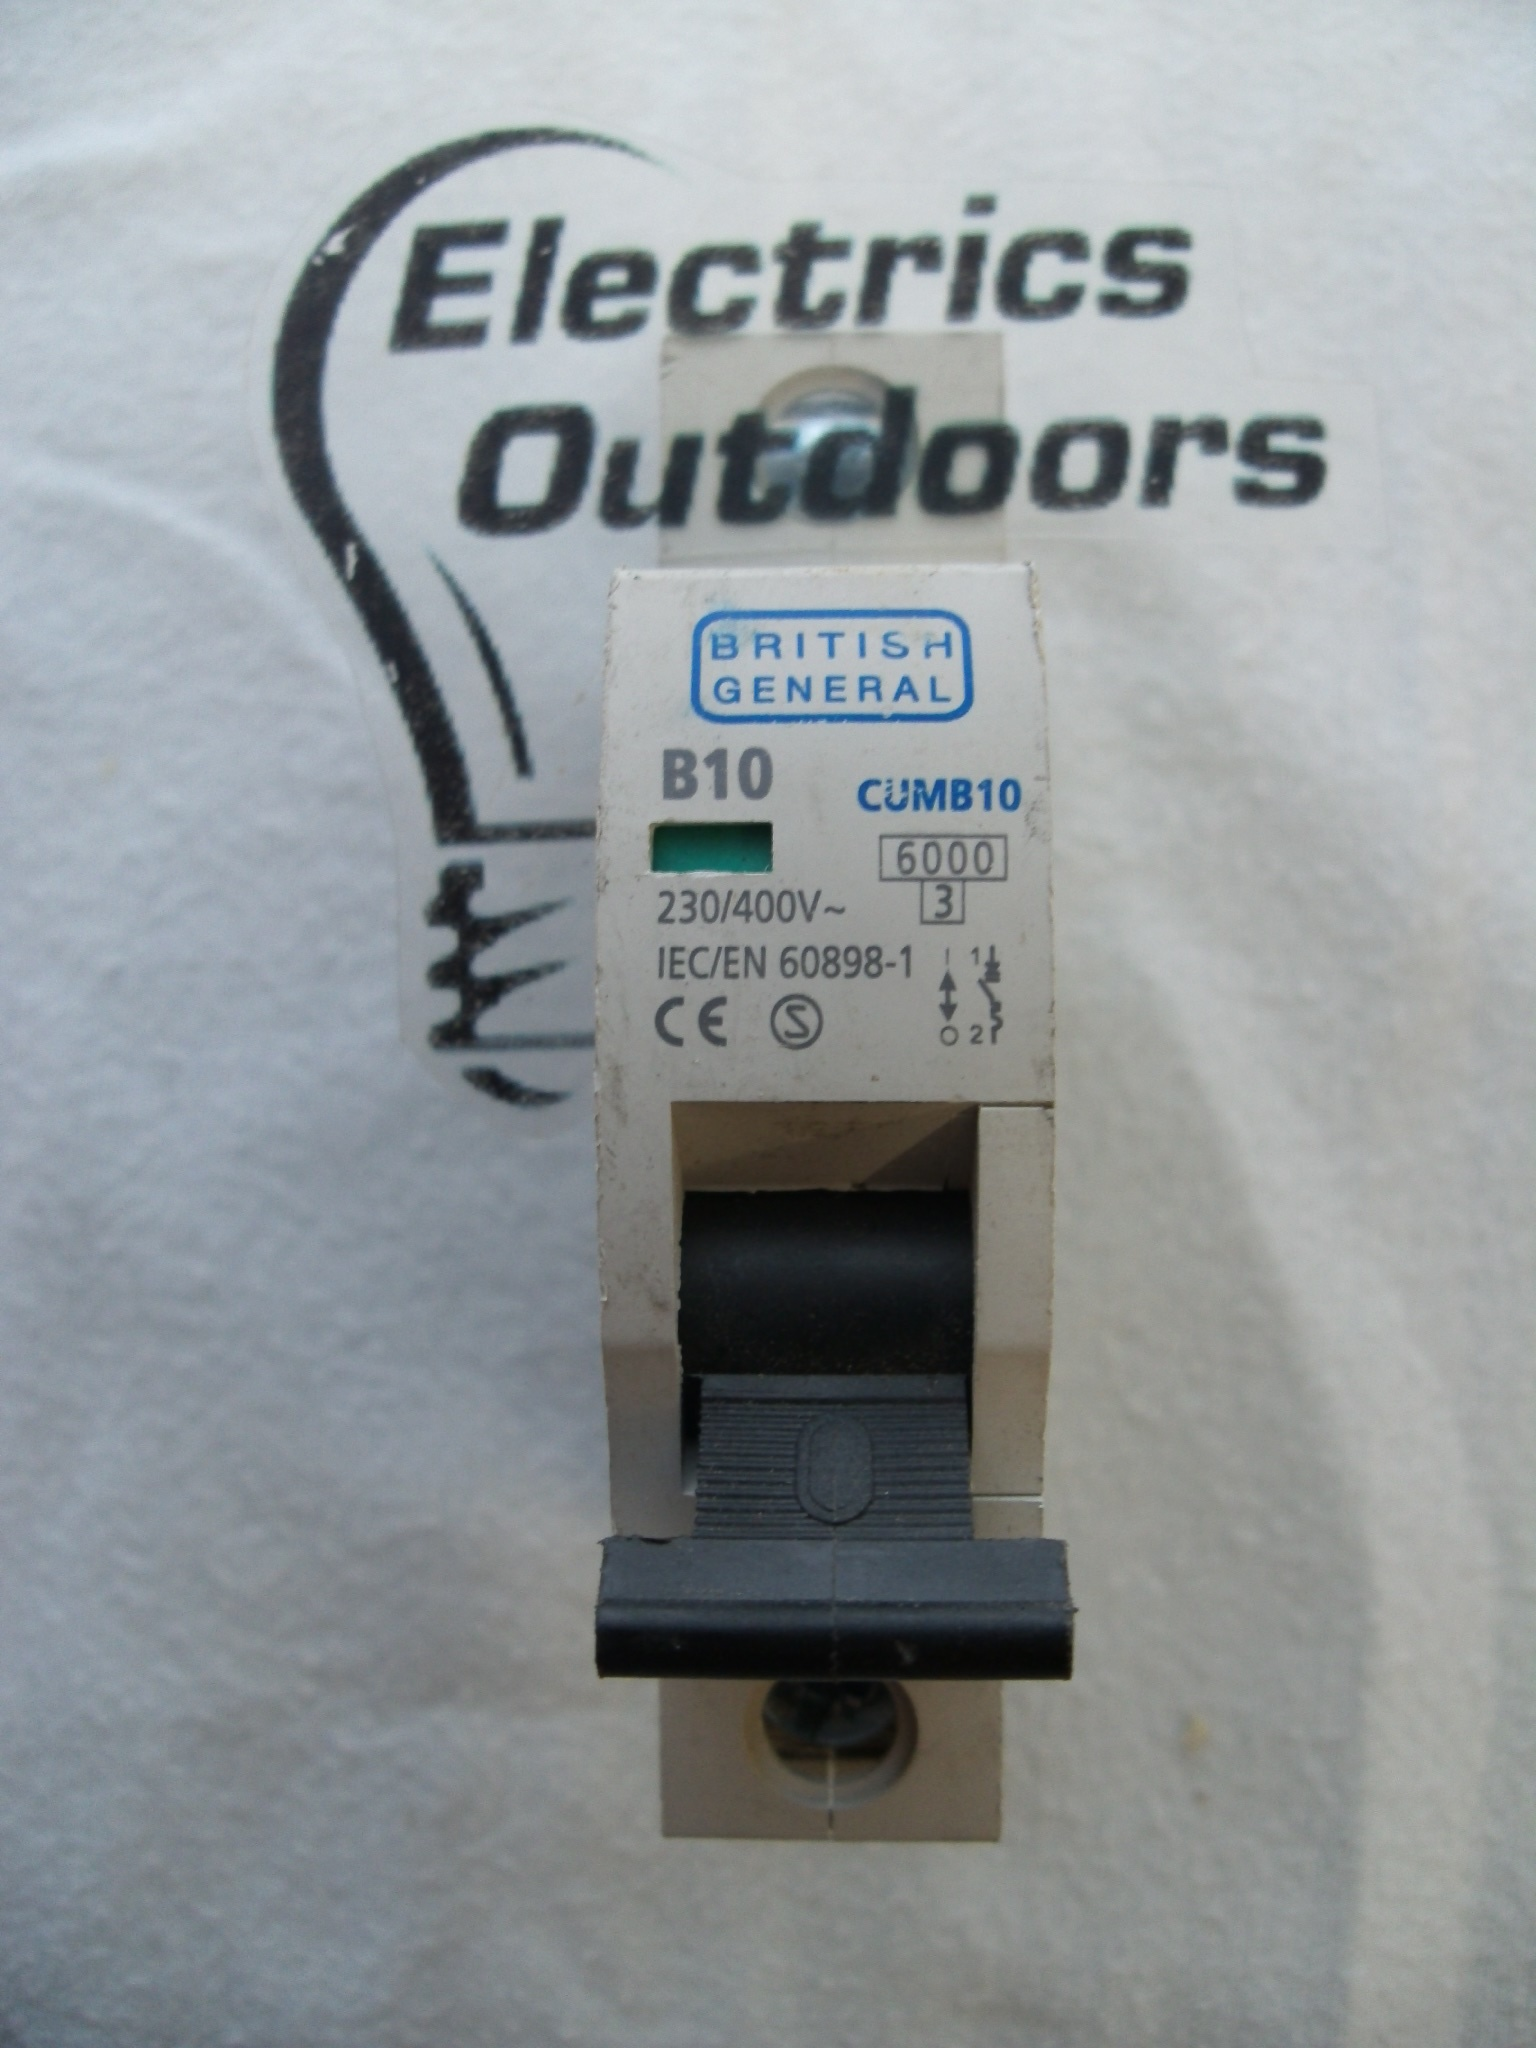 BRITISH GENERAL 10 AMP TYPE B 6 kA MCB CIRCUIT BREAKER 230V CUMB10 BS EN 60898